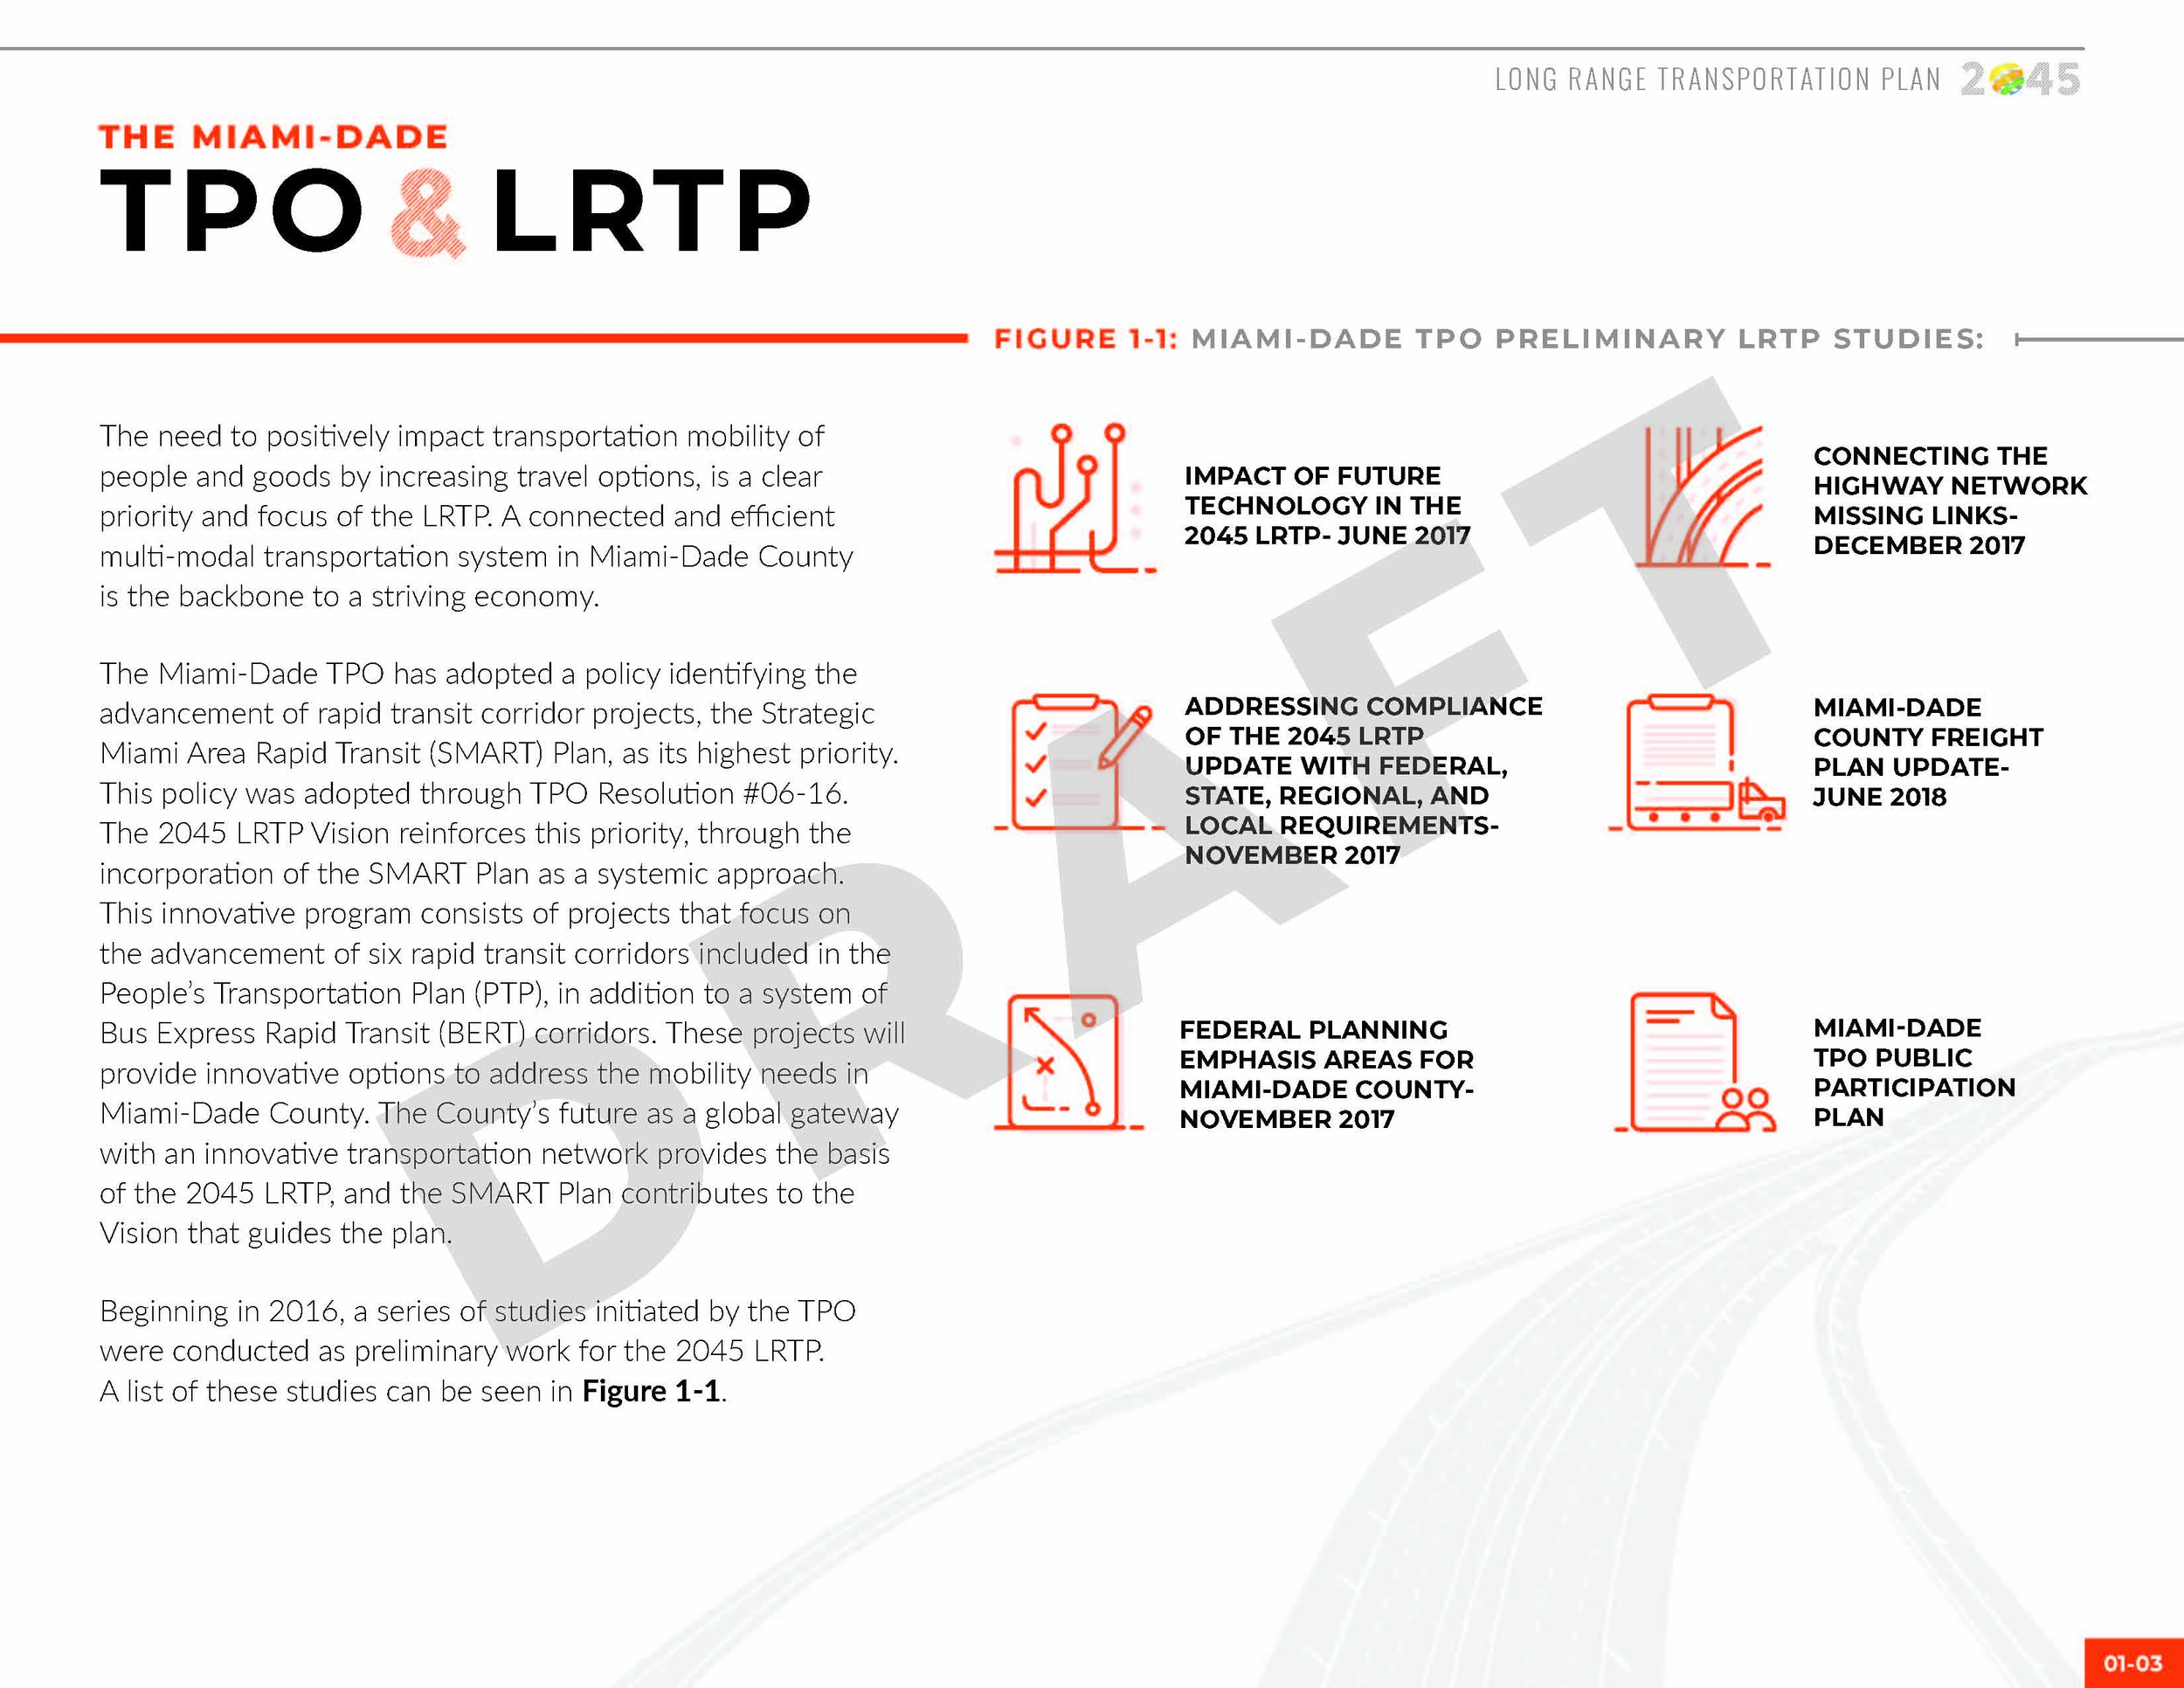 LRTP_ALLCHAPTERS_091019_130pm_Page_021.jpg